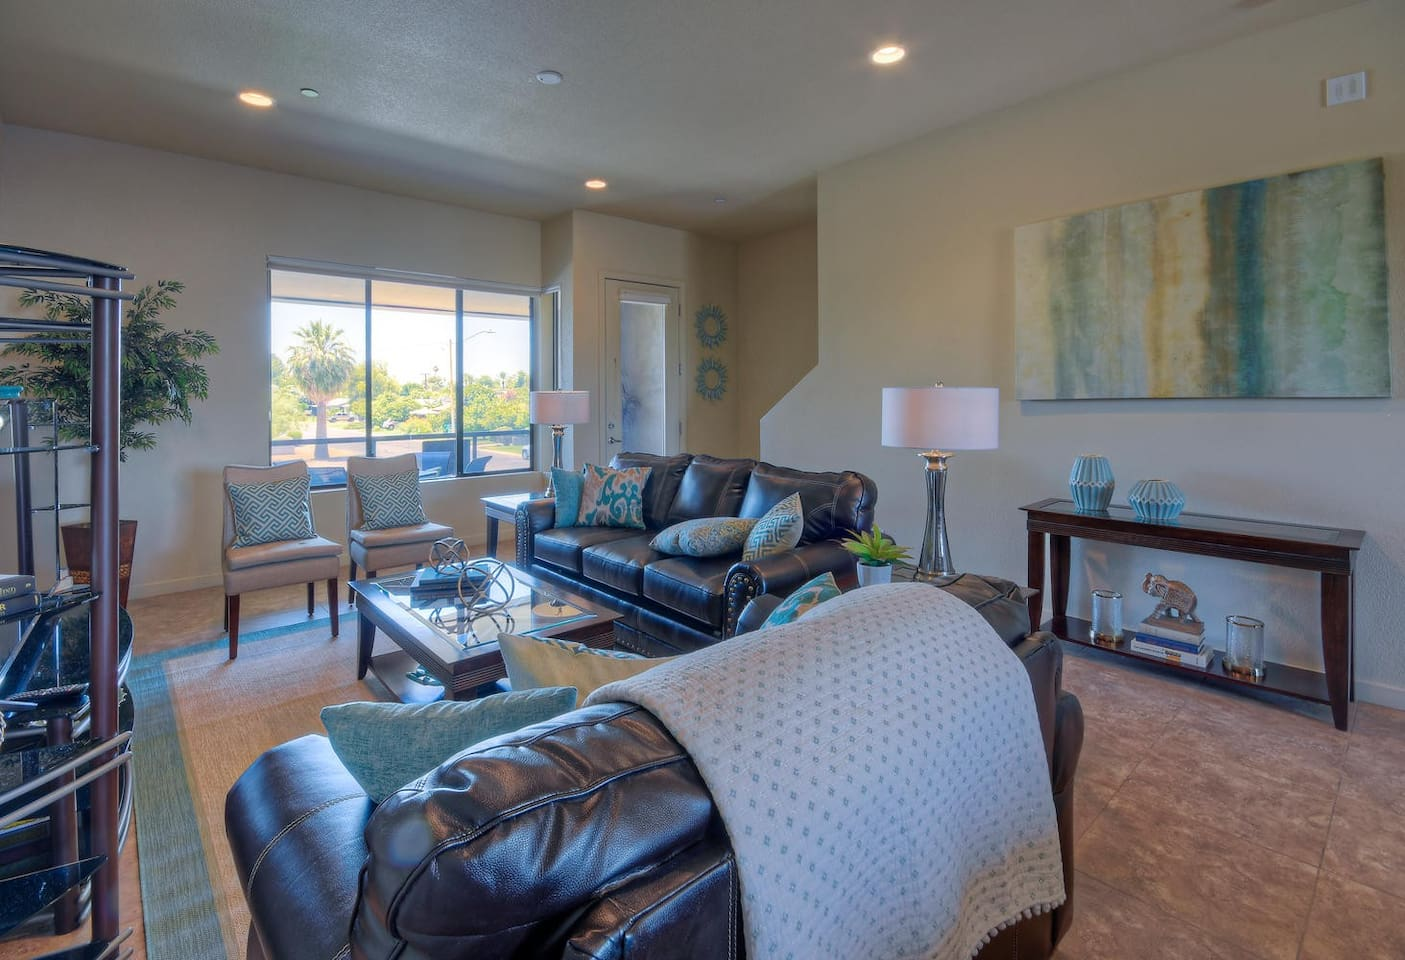 Main Living Space - open plan living/dining/kitchen with private deck overlooking pool